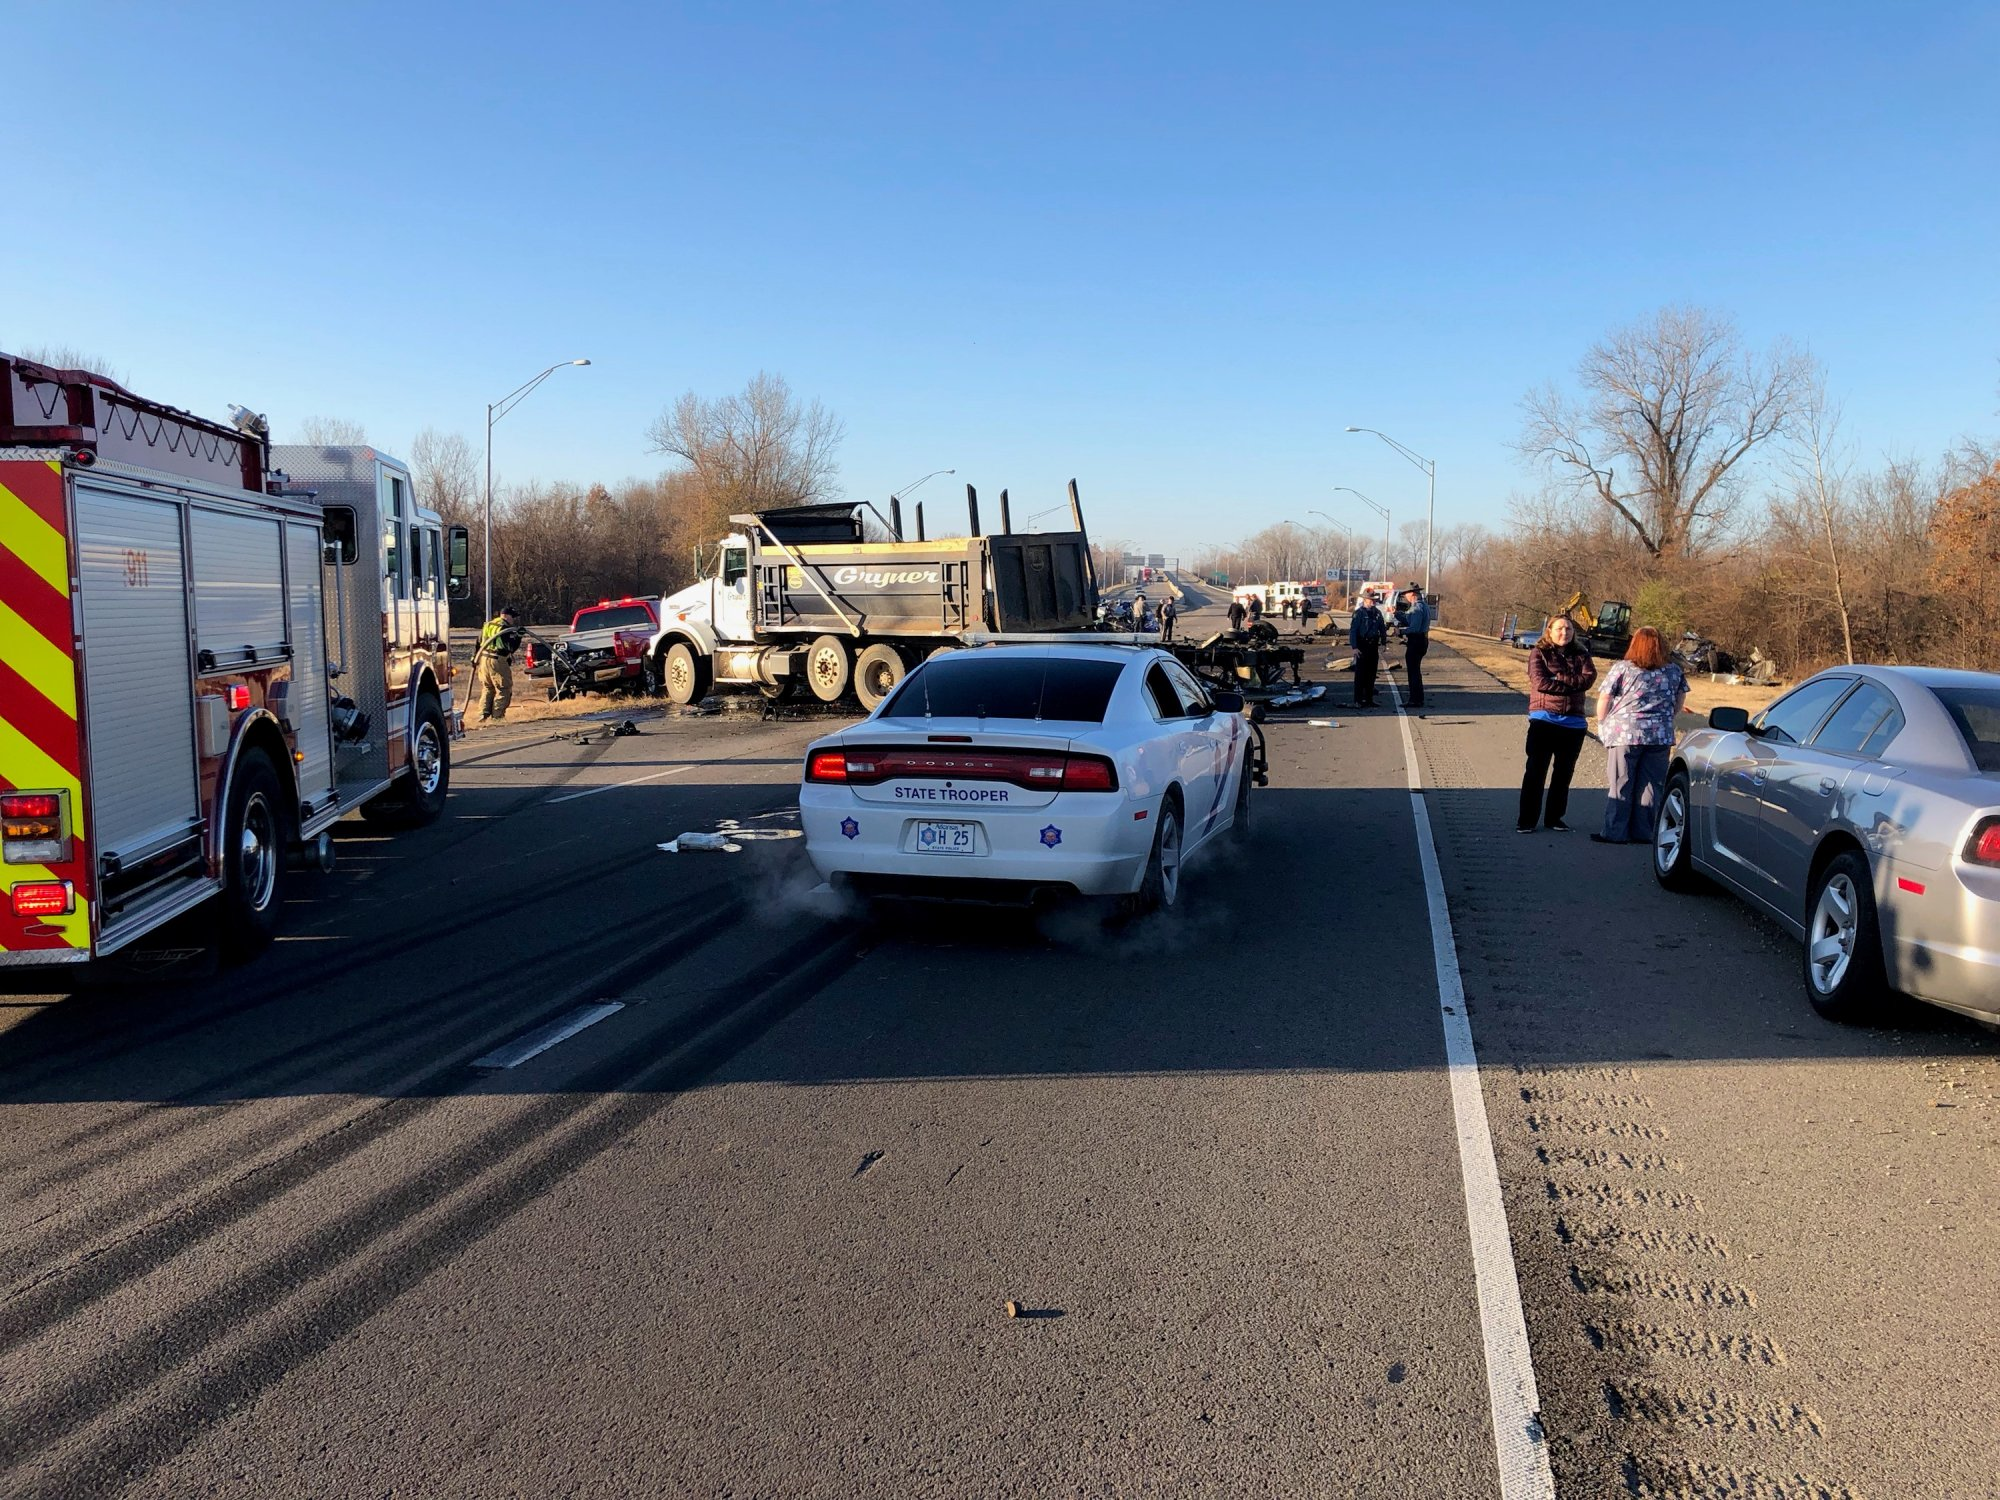 Victims Identified In Deadly I-540 Crash In Van Buren | Fort Smith